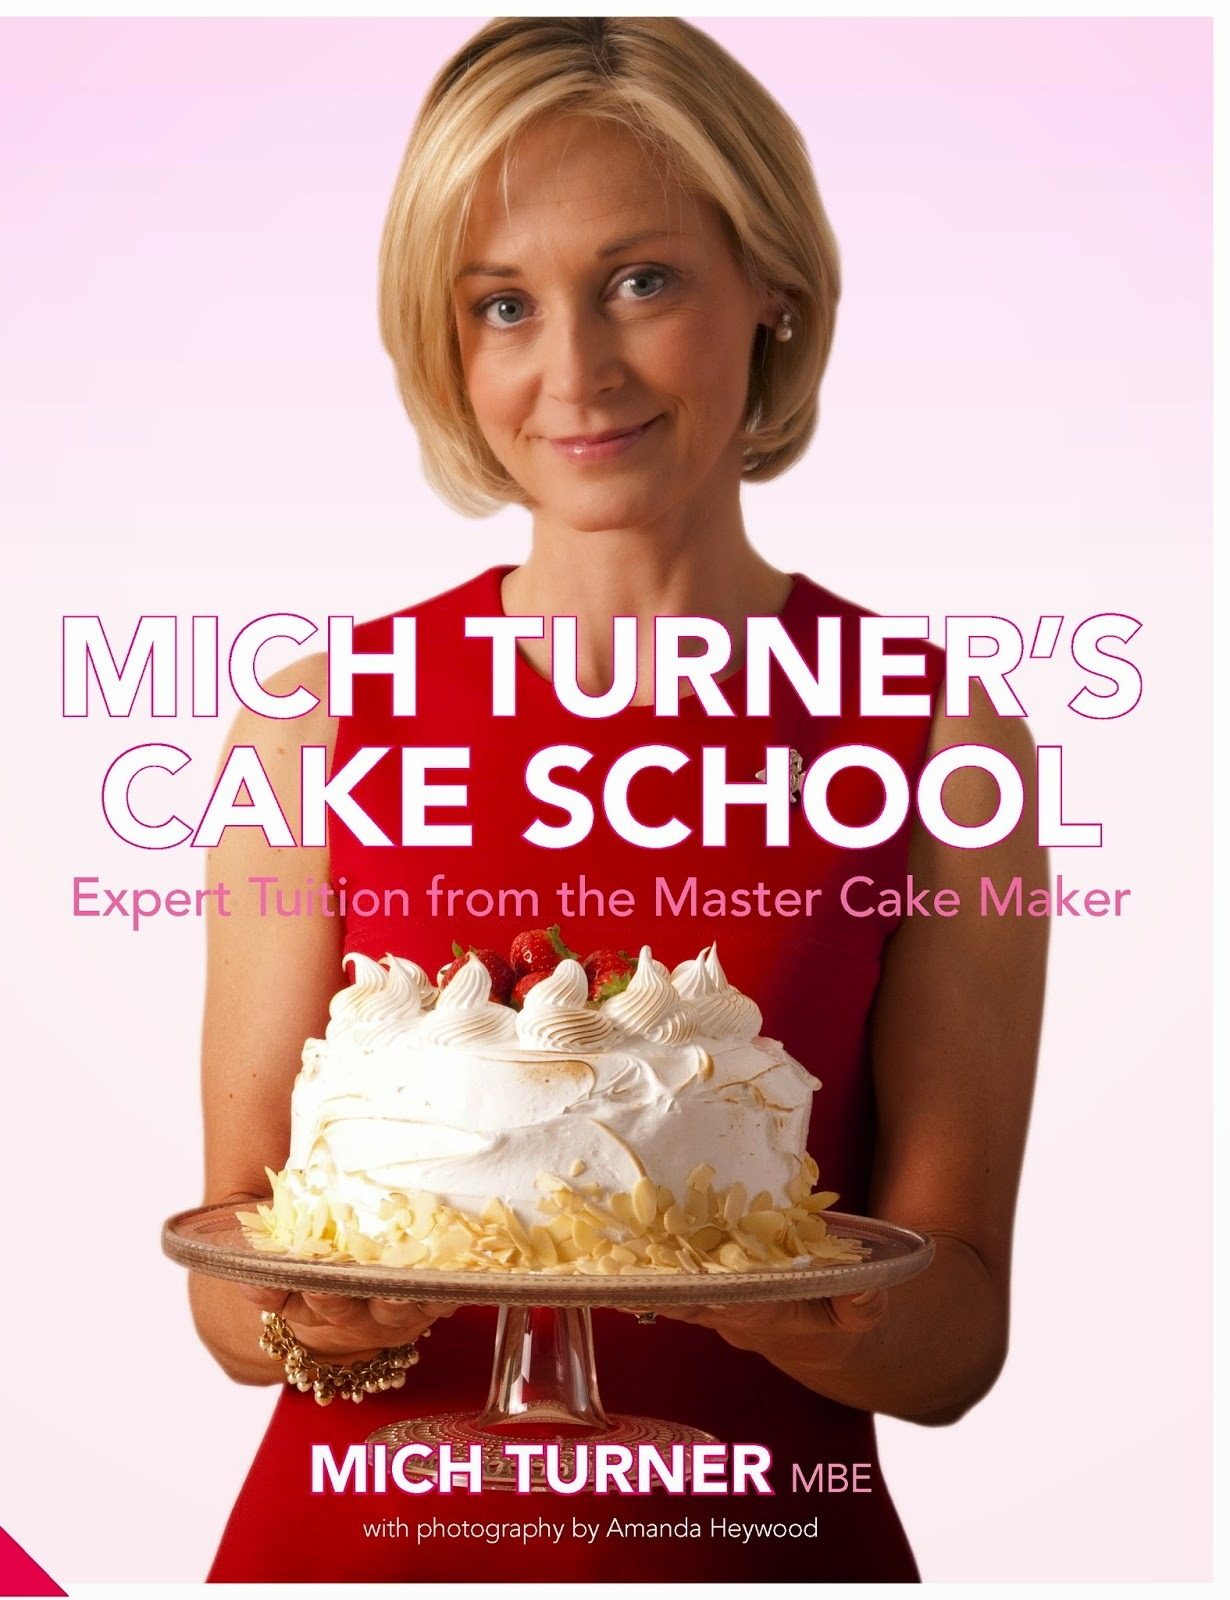 Calling all budding Bake Off contestants - Mich Turner's Cake School